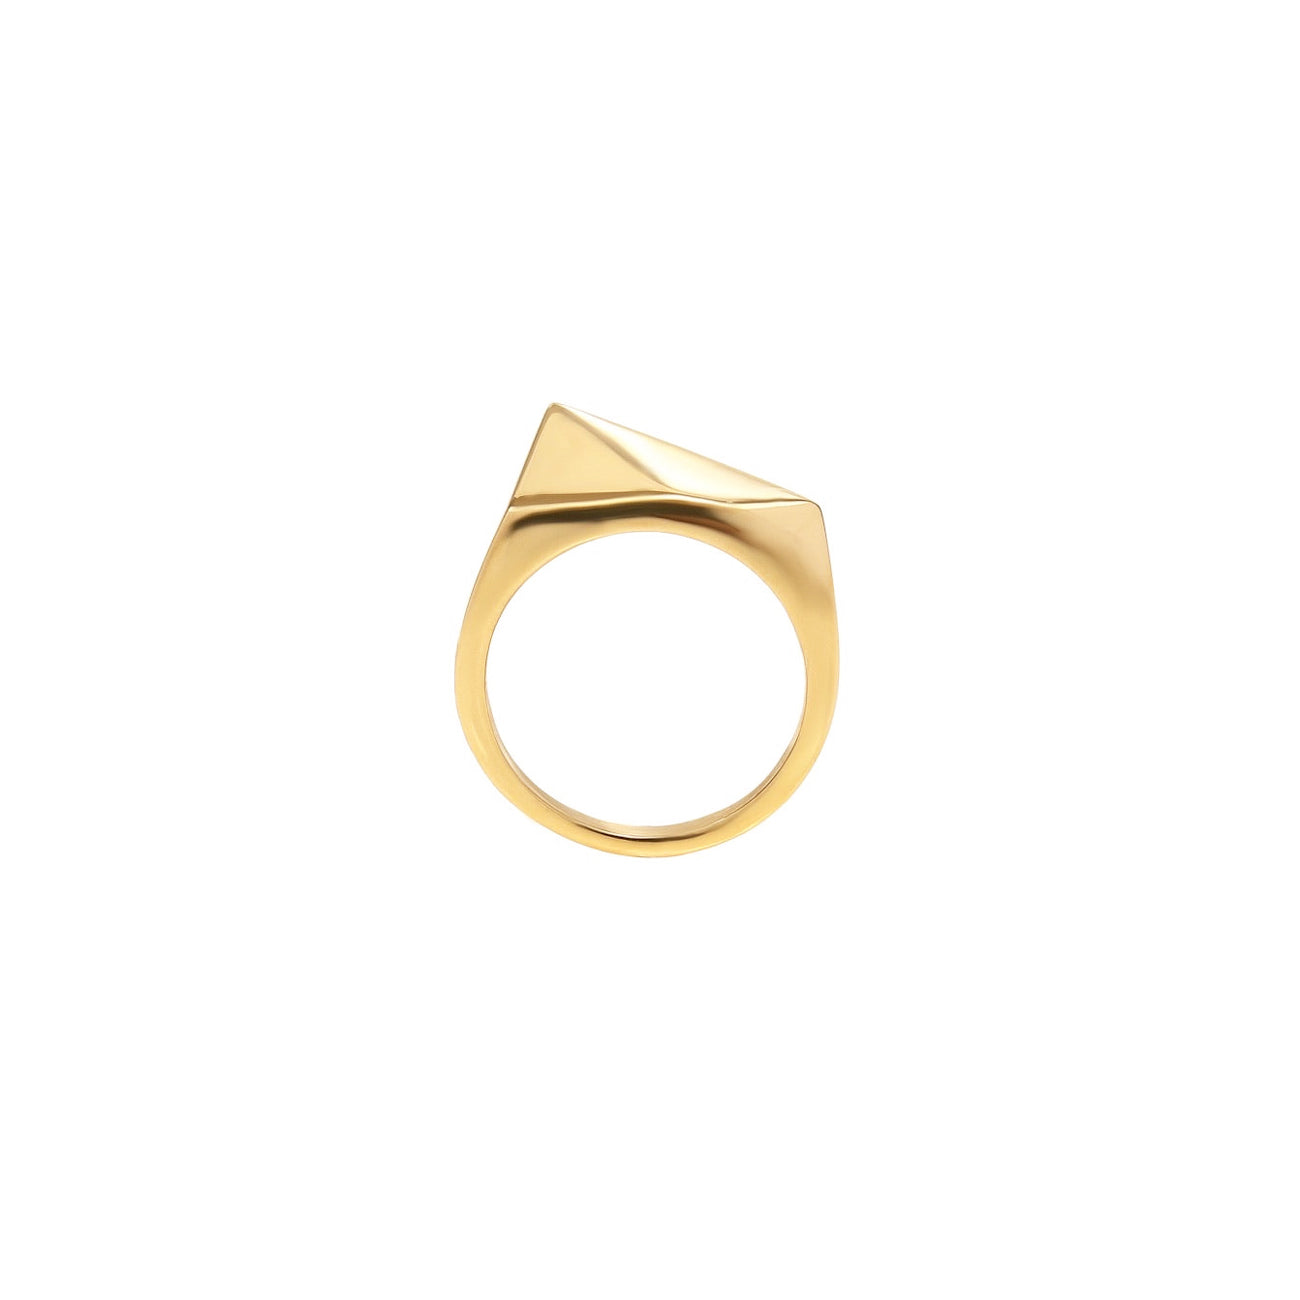 Graphical ring - Polished gold